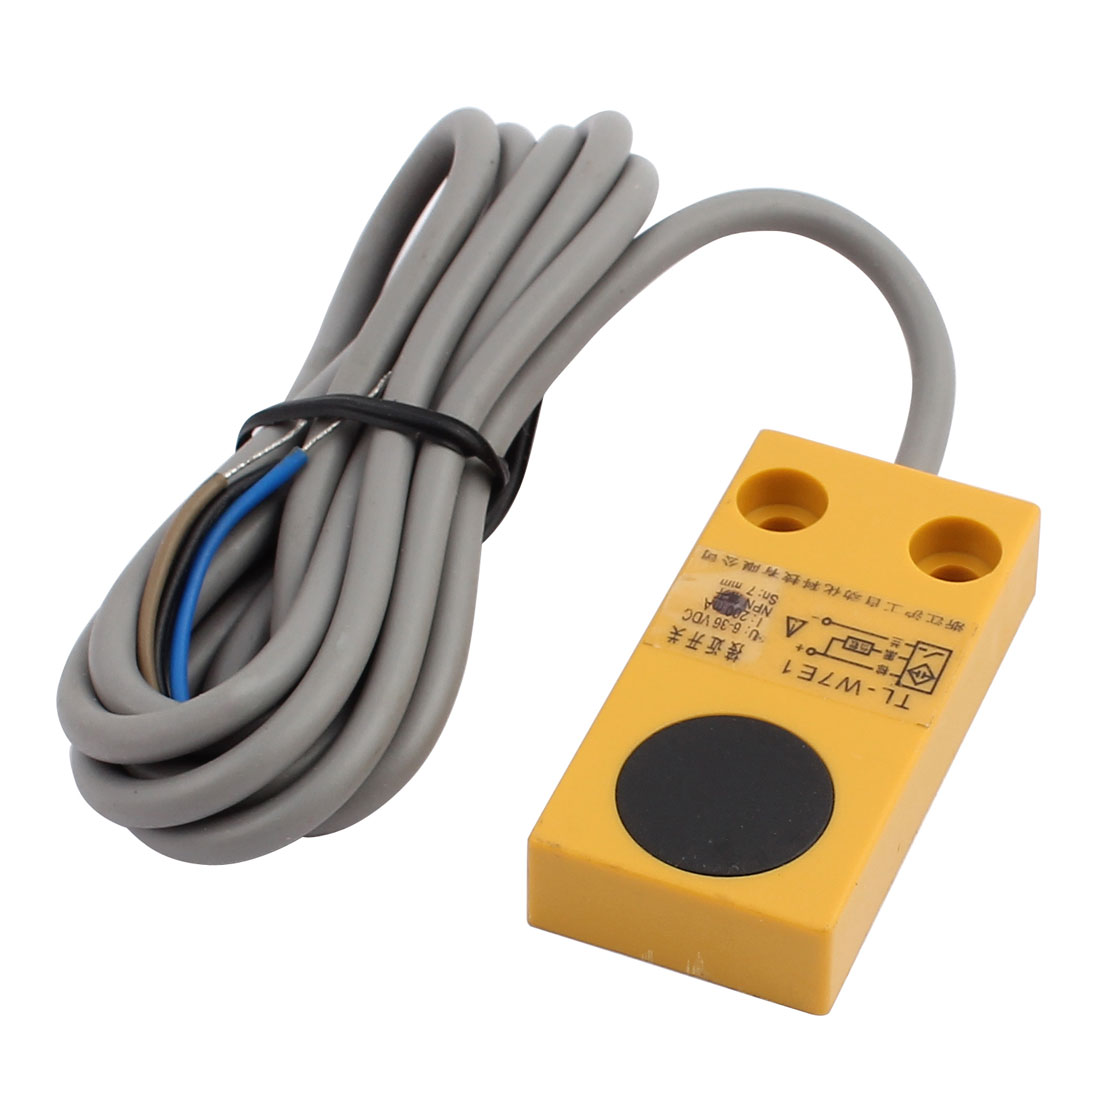 TL-W7E1 DC 6-36V 200mA NPN NO 7mm Inductive Proximity Sensor Switch 3-wire